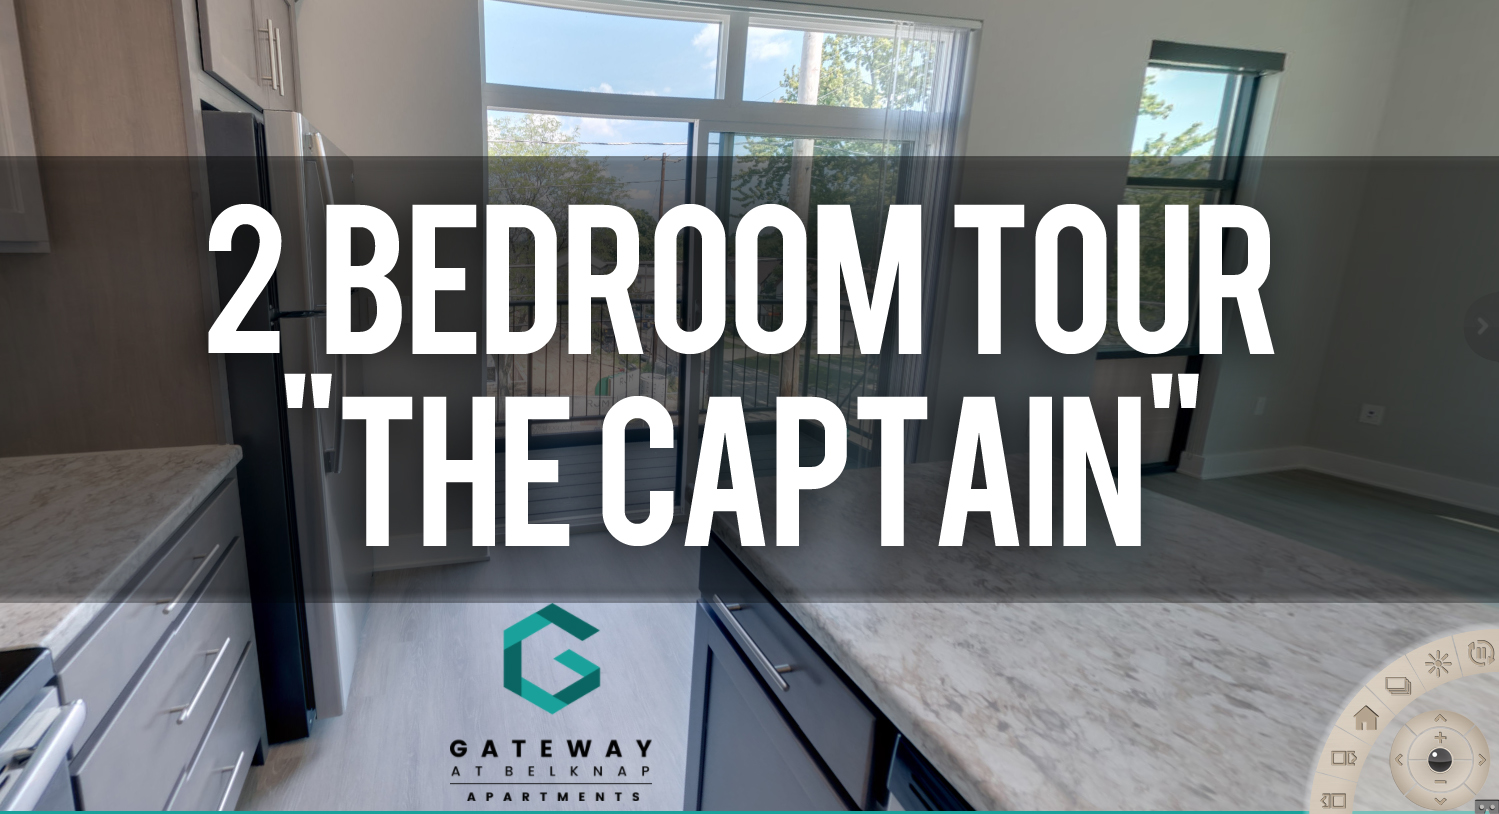 Virtual Tour Gateway at Belknap Apartments 2 Bedroom floorplan The Captain